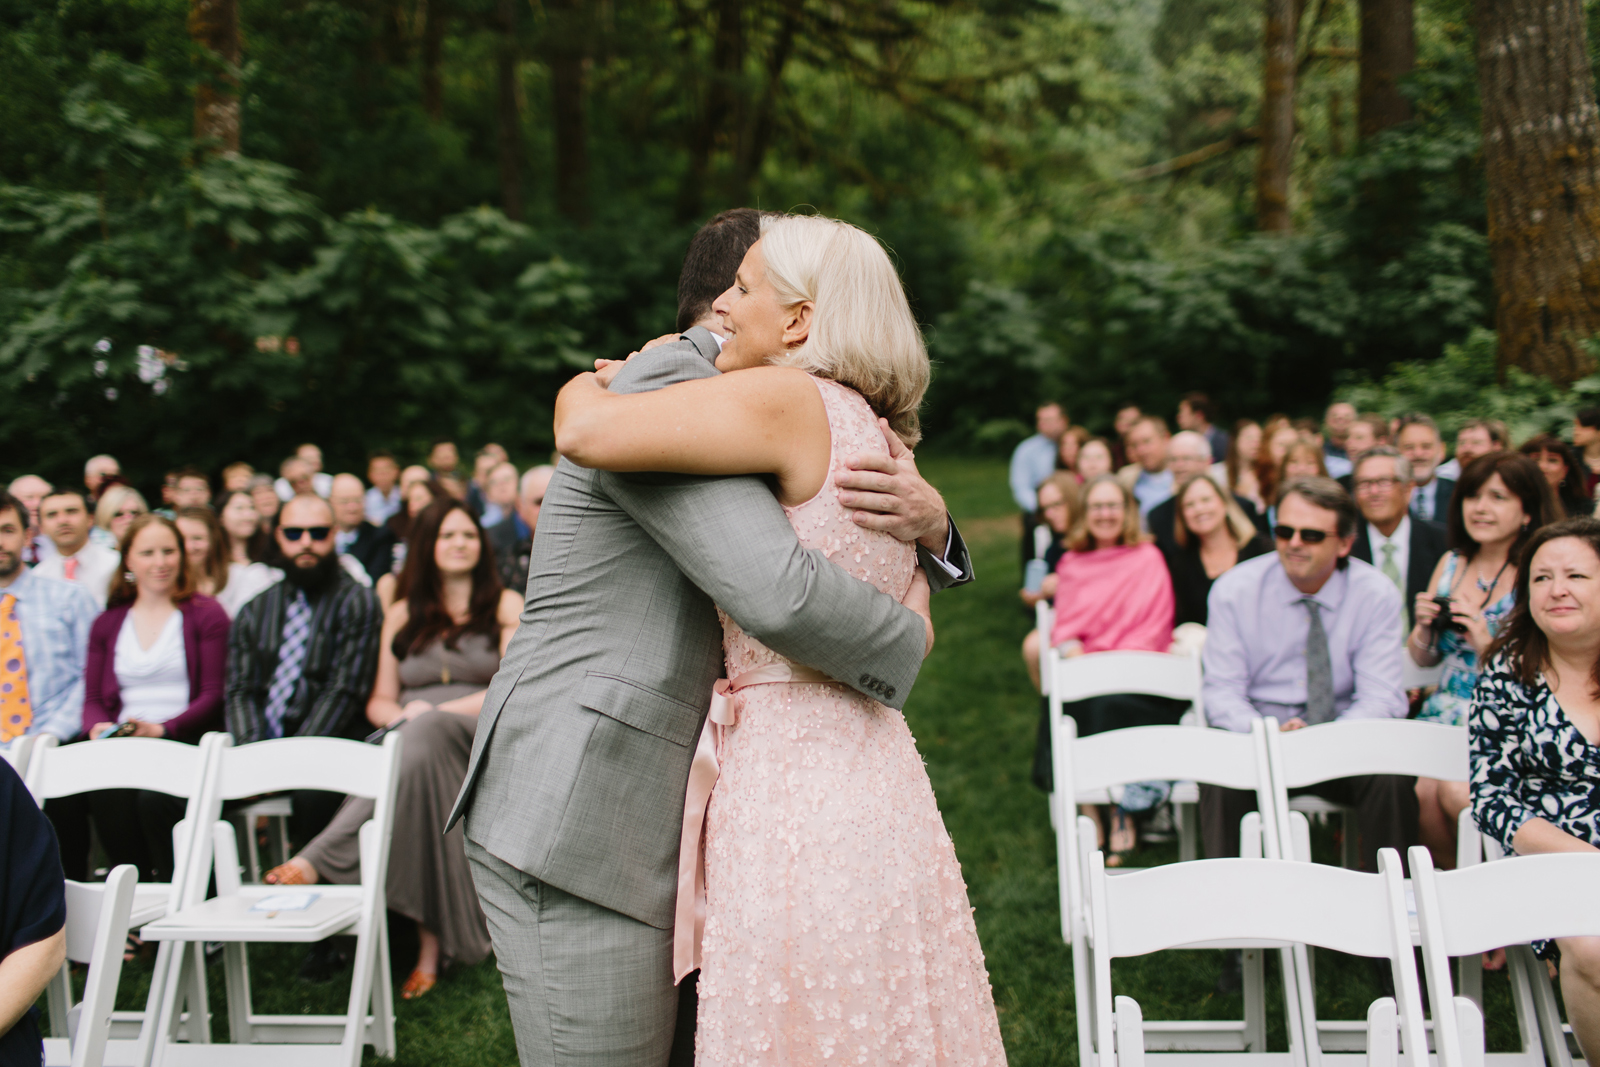 The groom hugs the mother of the bride during ceremony at Bridal Veil Lakes in Corbett, OR